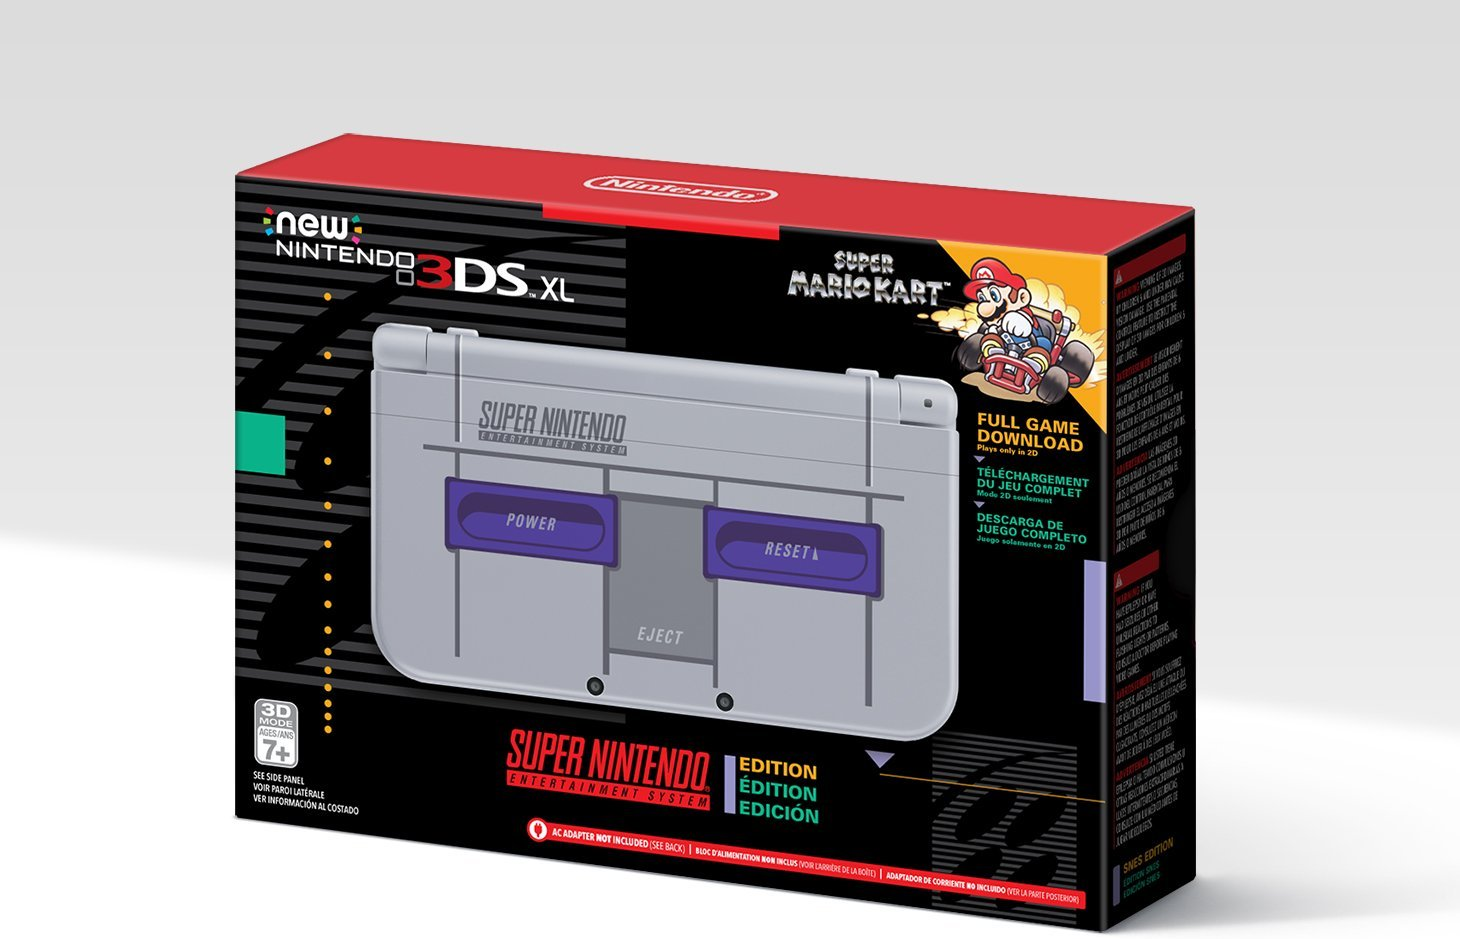 amazon reveals exclusive snes classic edition 3ds xl shacknews. Black Bedroom Furniture Sets. Home Design Ideas